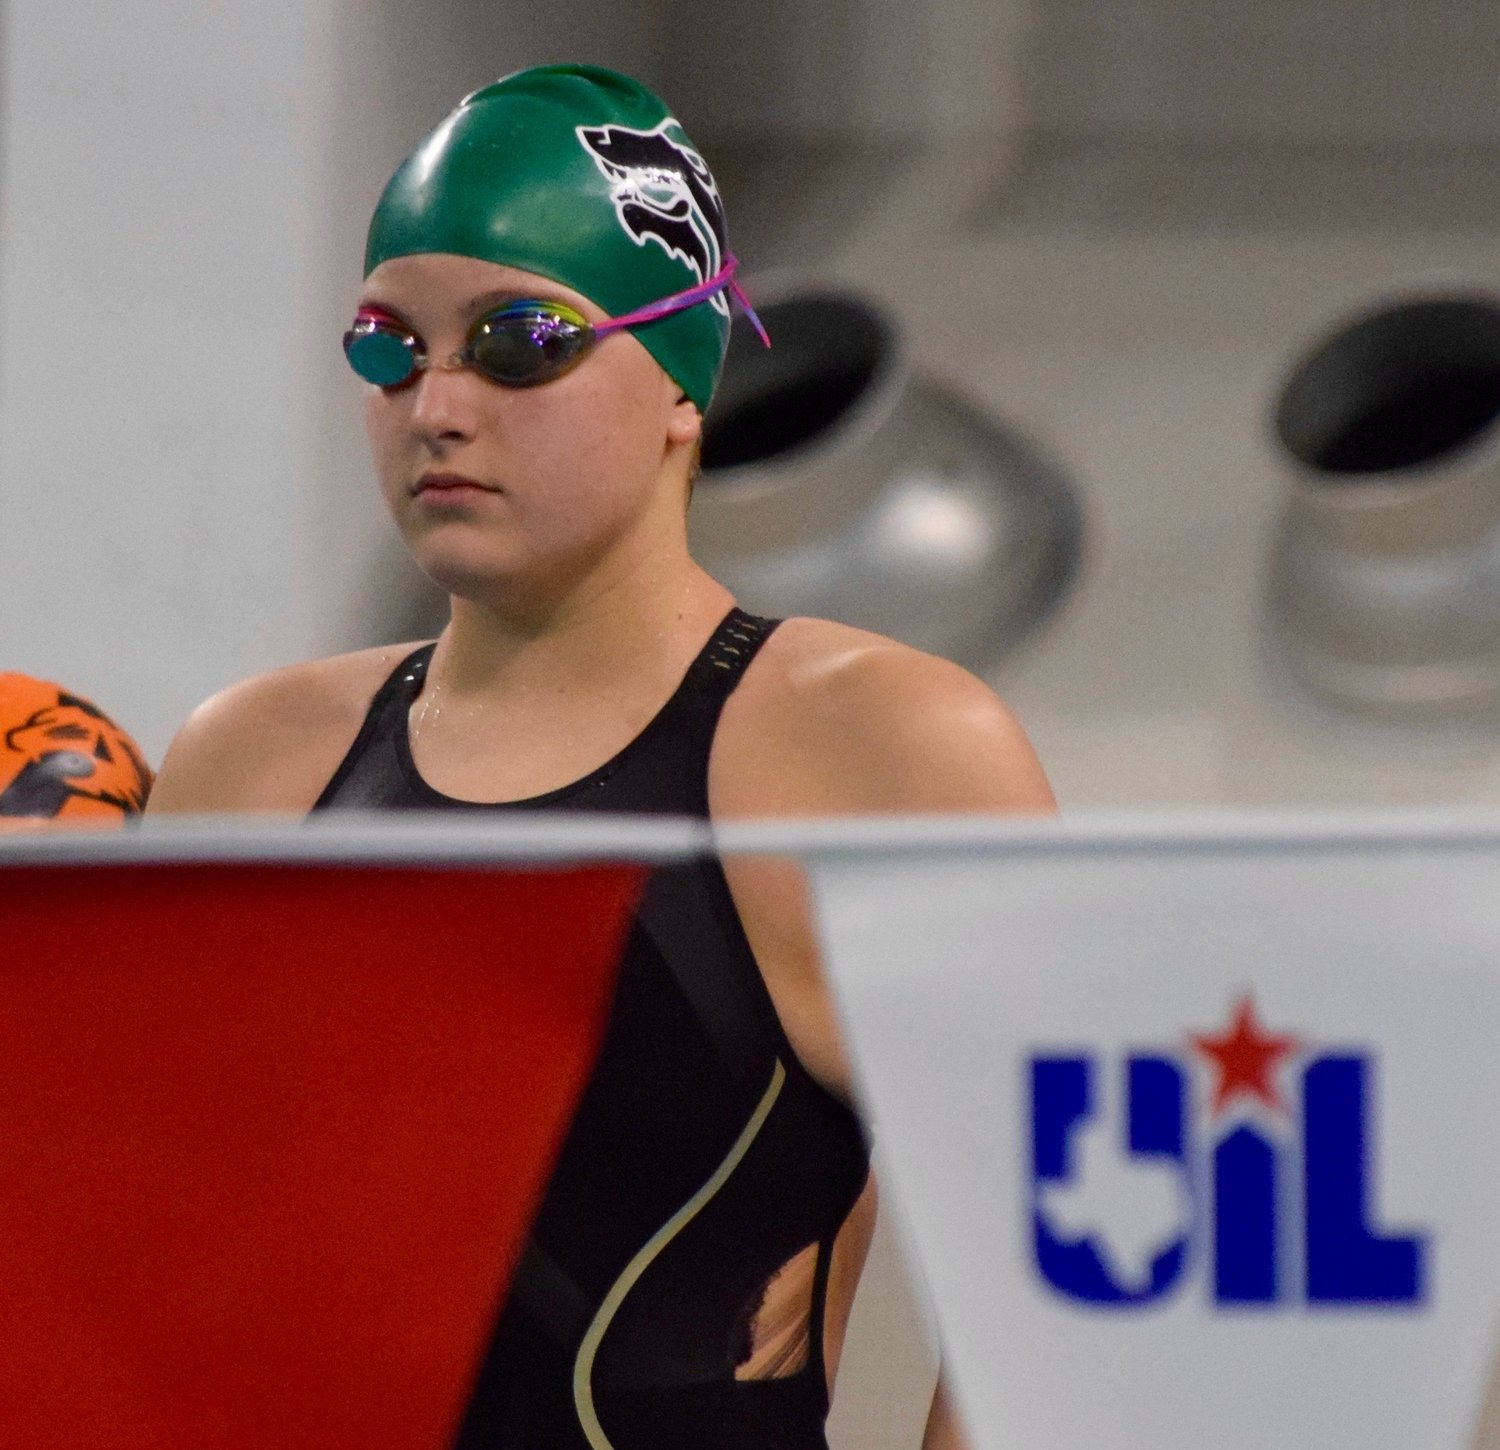 Cedar Park senior Bella Zapata finished 13th overall in the 200-yard individual medley at the UIL State Swimming and Diving Championships on Saturday.